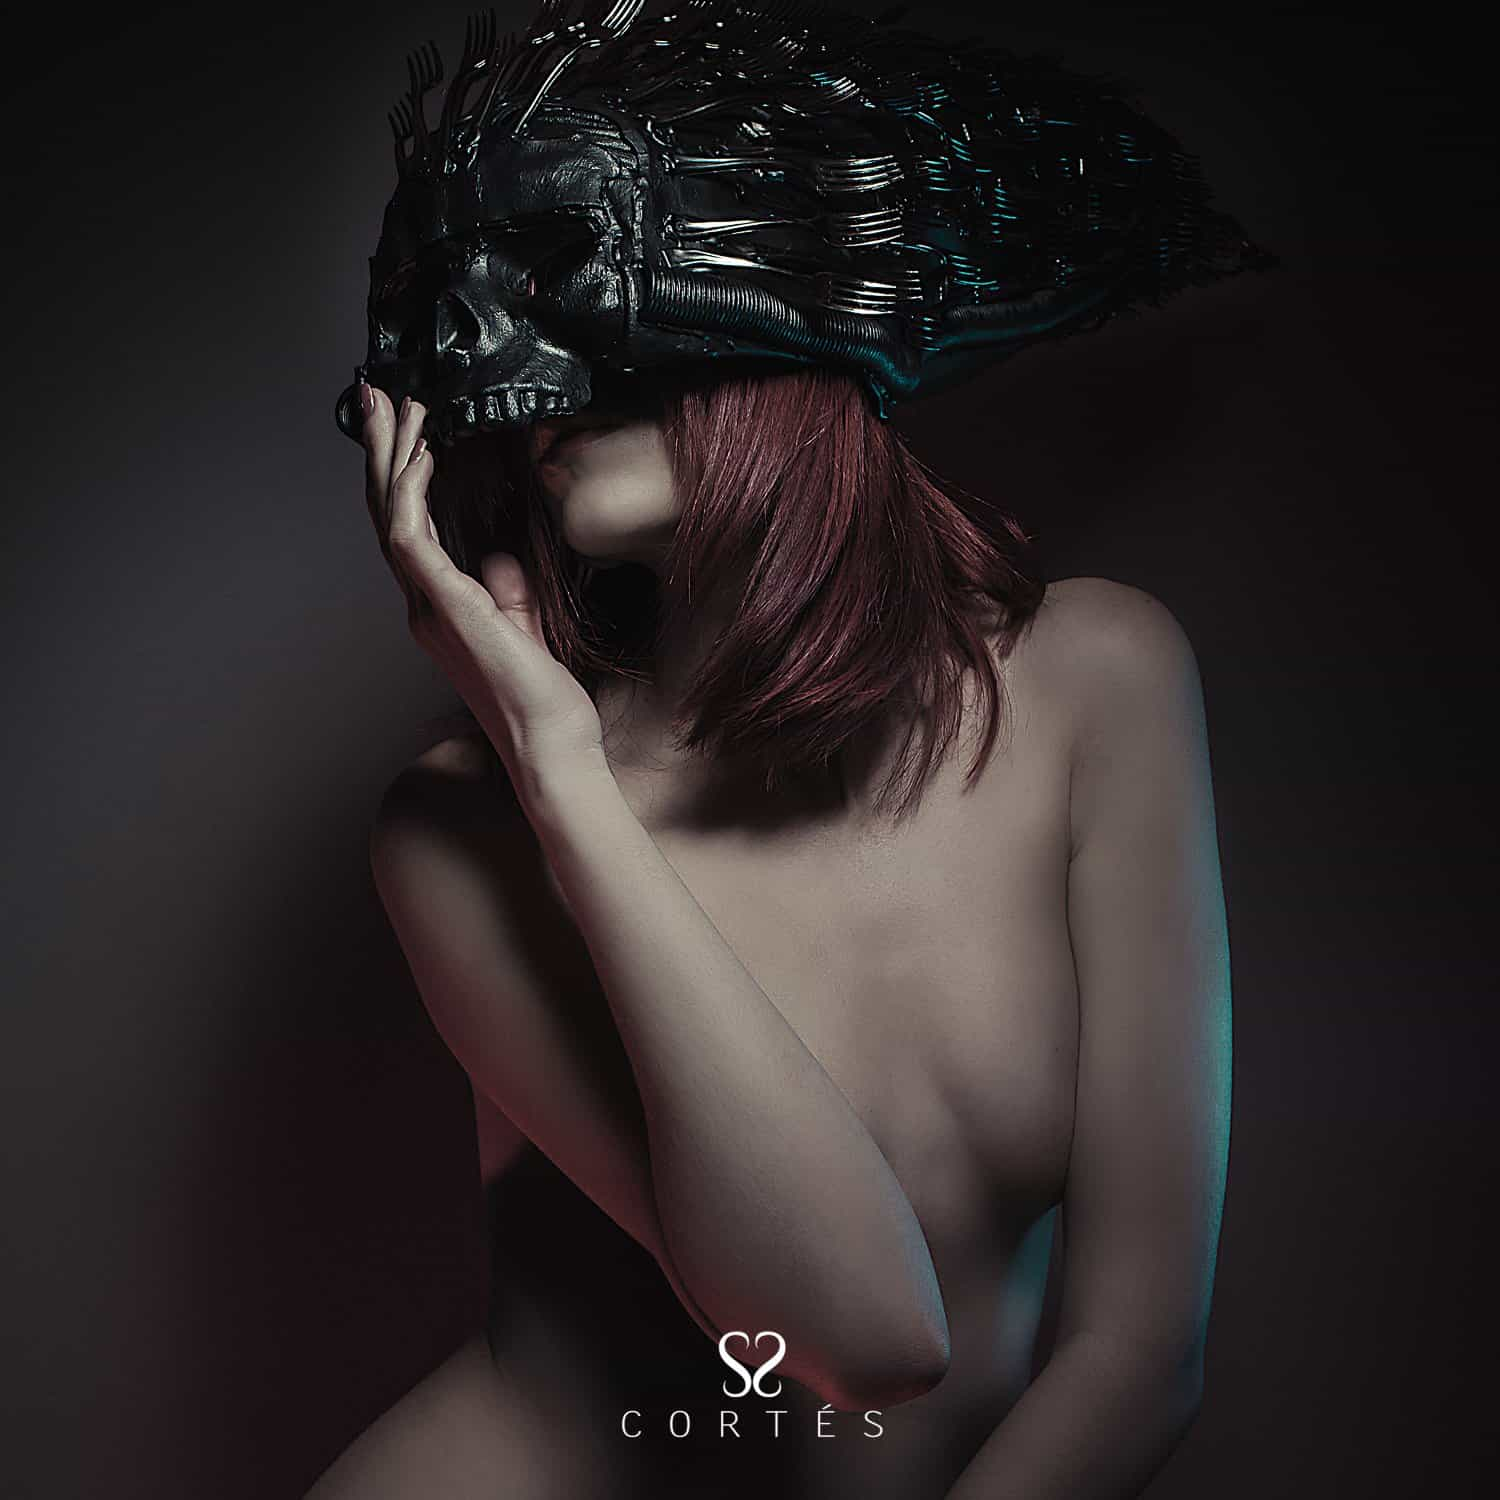 naked-redhead-girl-with-red-corset-and-helmet-skull-with-forks Fernando Cortés - Fotografía creativa y creación de estilismos